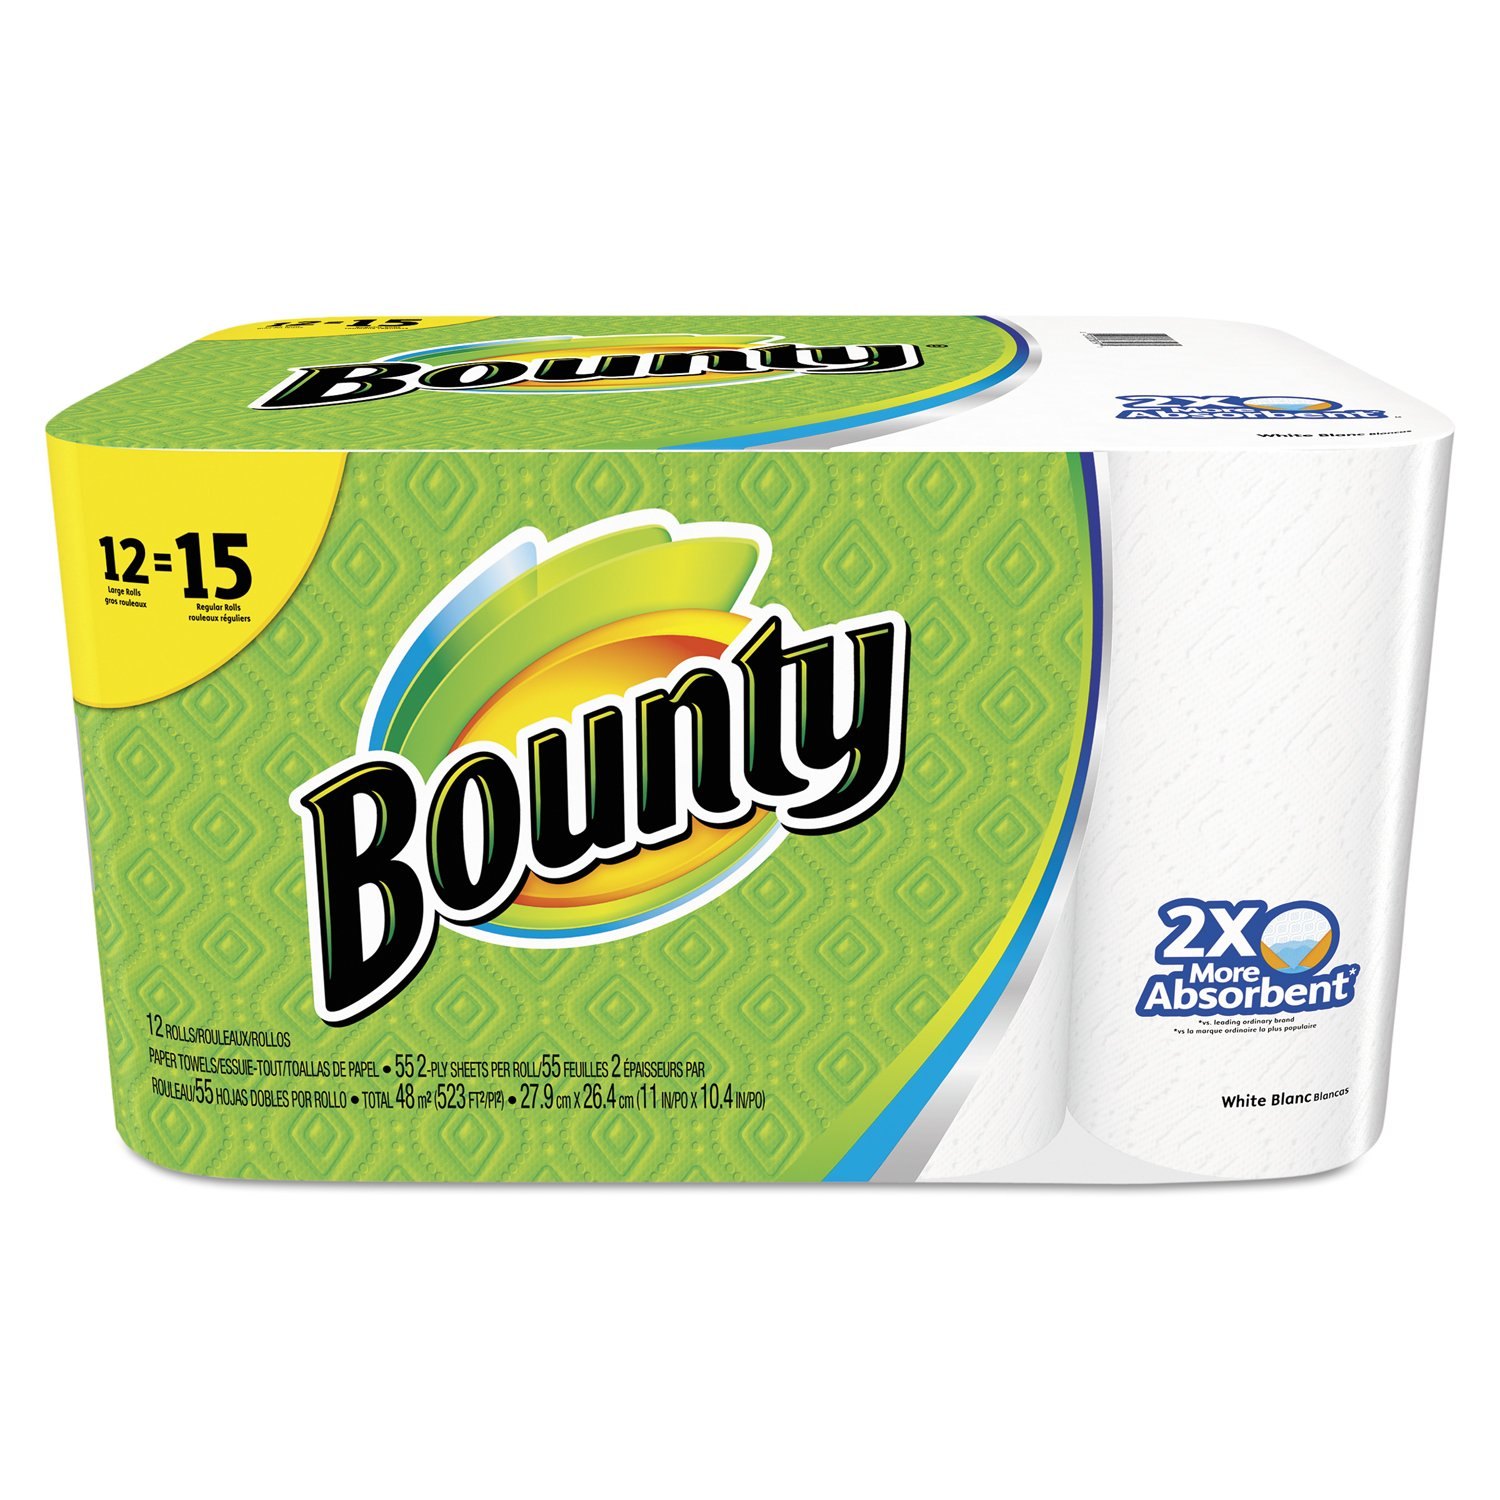 Bounty 88197 Perforated Towel Rolls, 11'' x 10-2/5'', White (Pack of 12) by Bounty